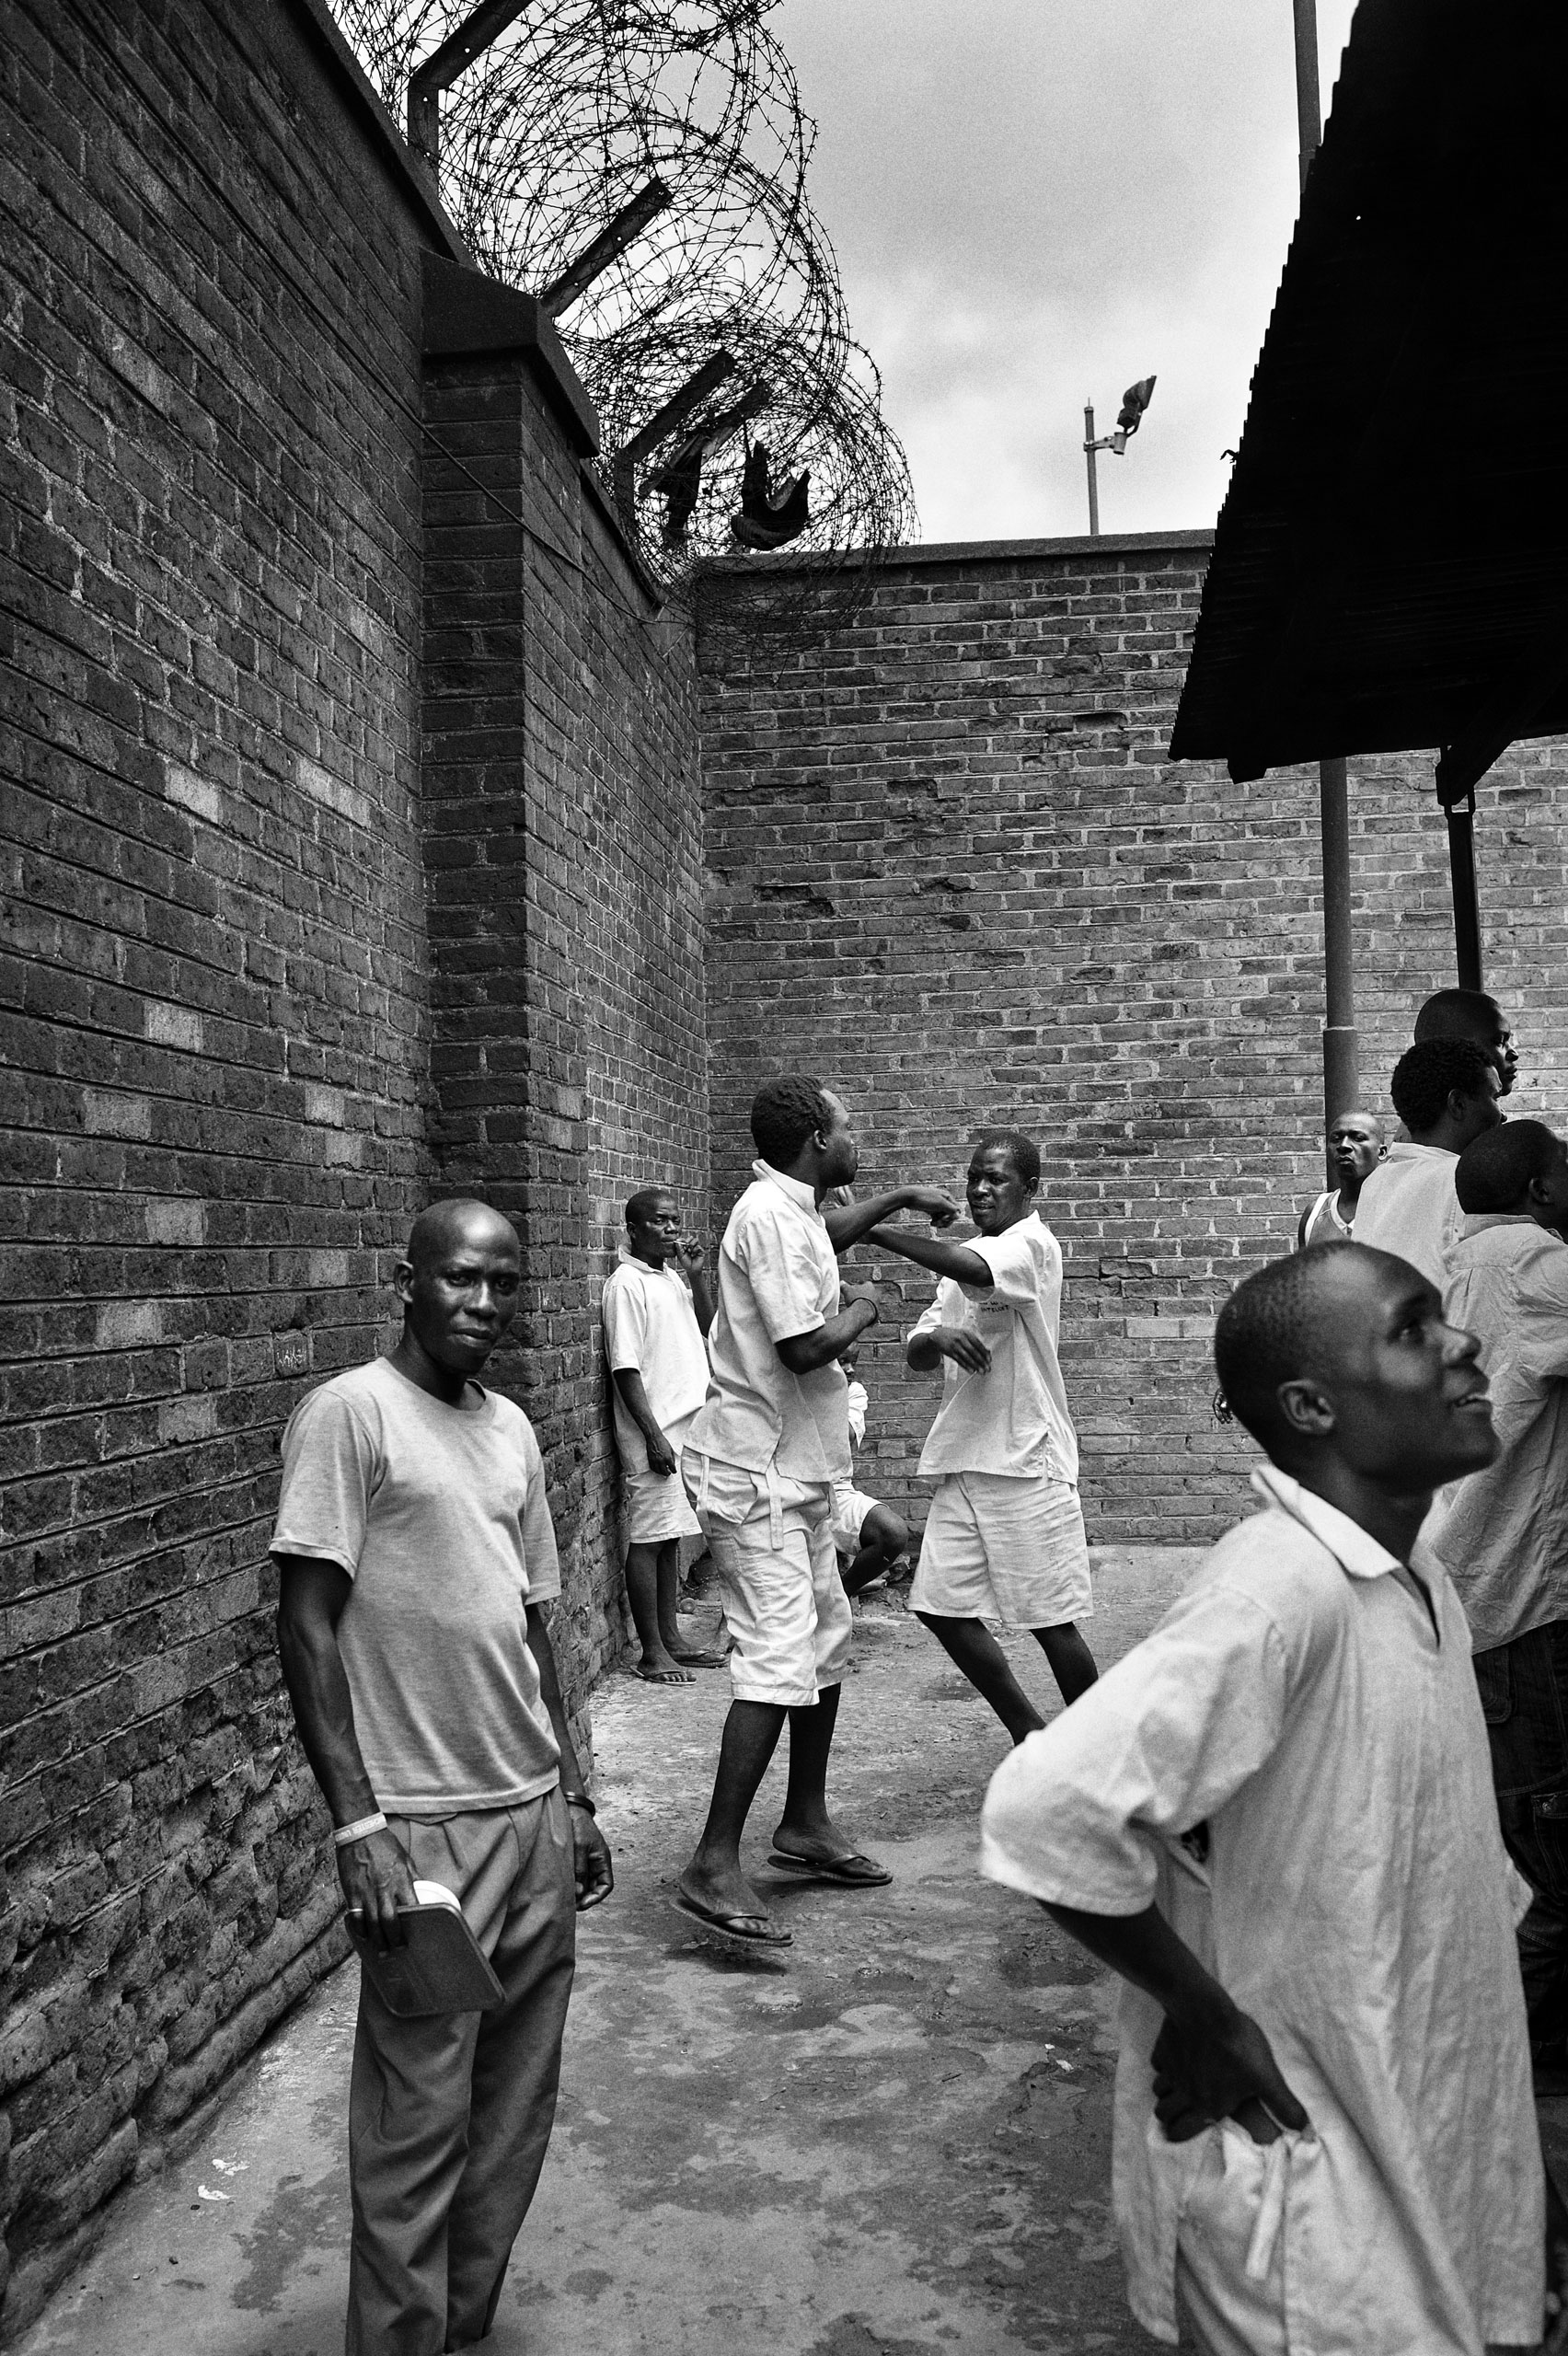 Inmates wait in line to receive food once a day.